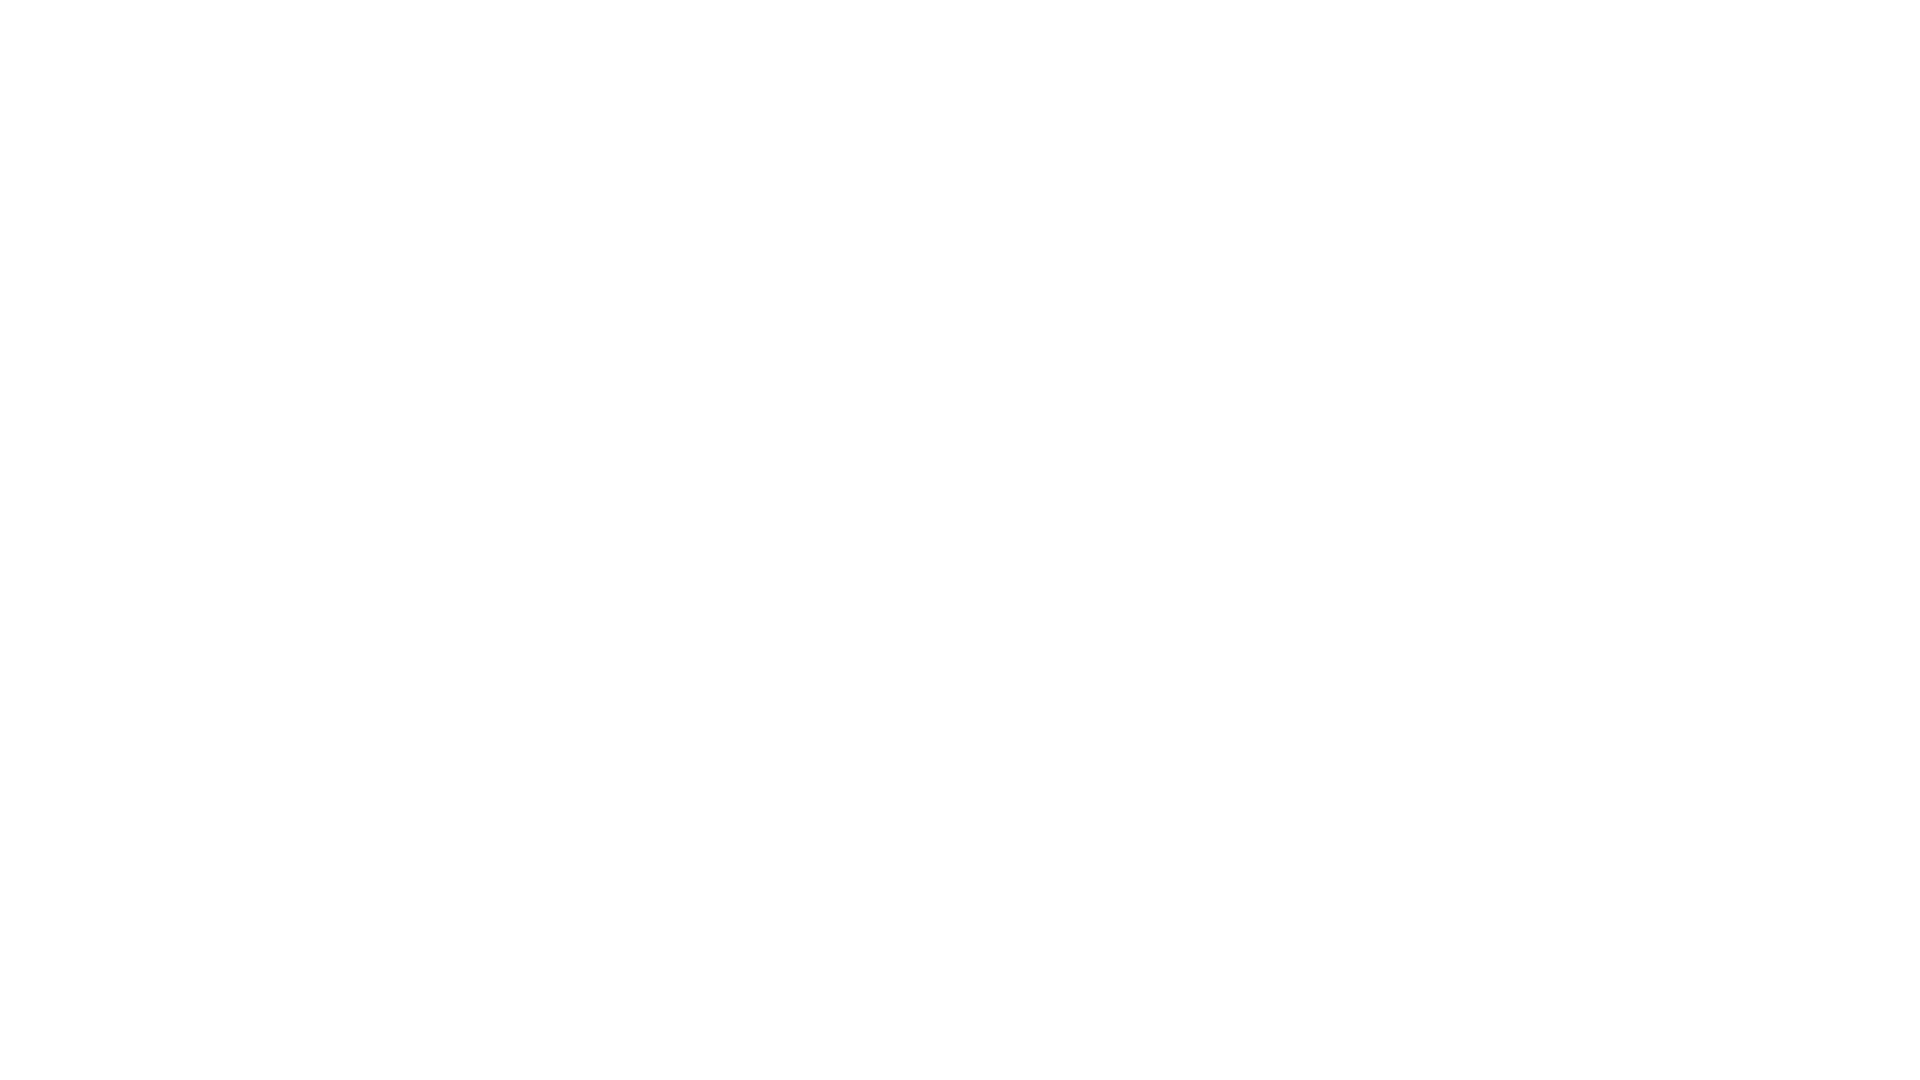 strobel_martin_clients_dazn